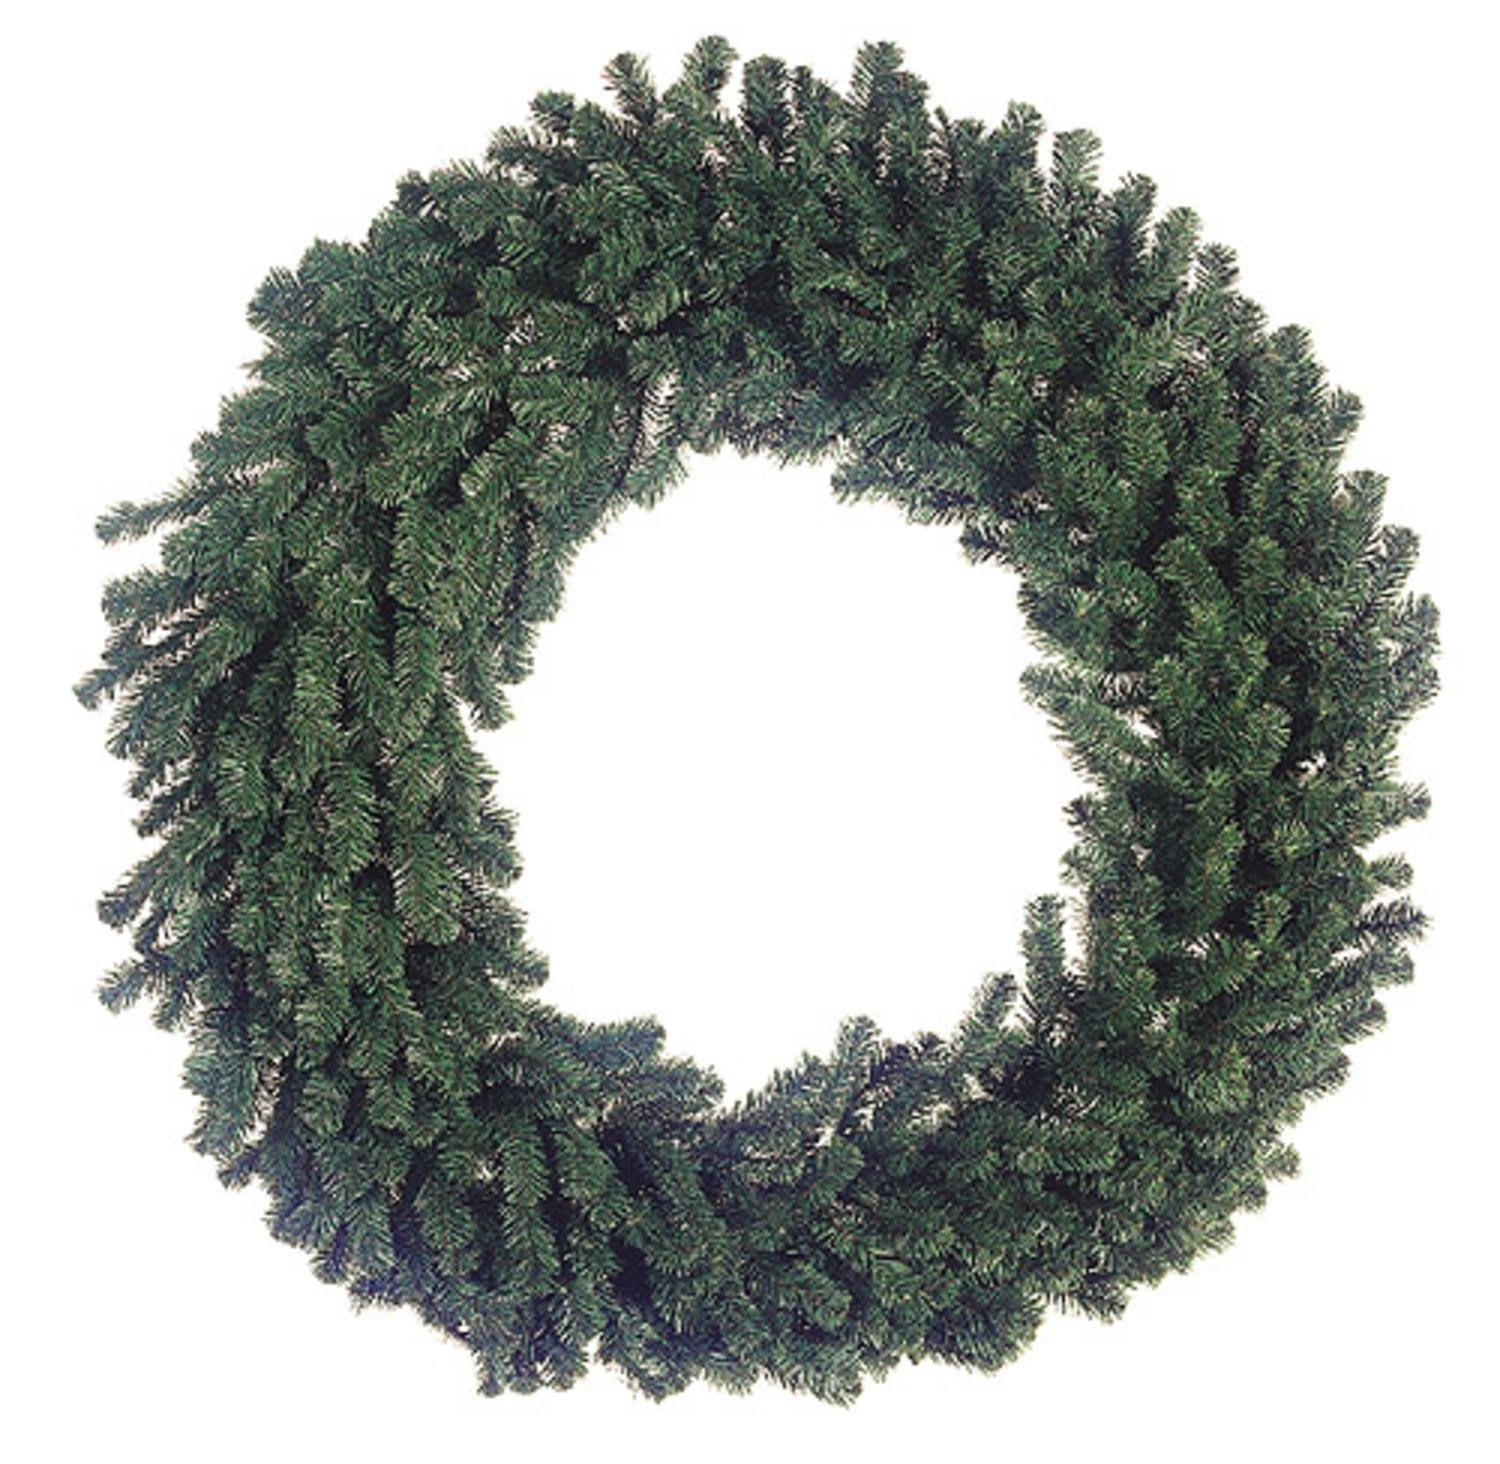 Allstate 60'' Deluxe Windsor Pine Artificial Christmas Wreath - Unlit